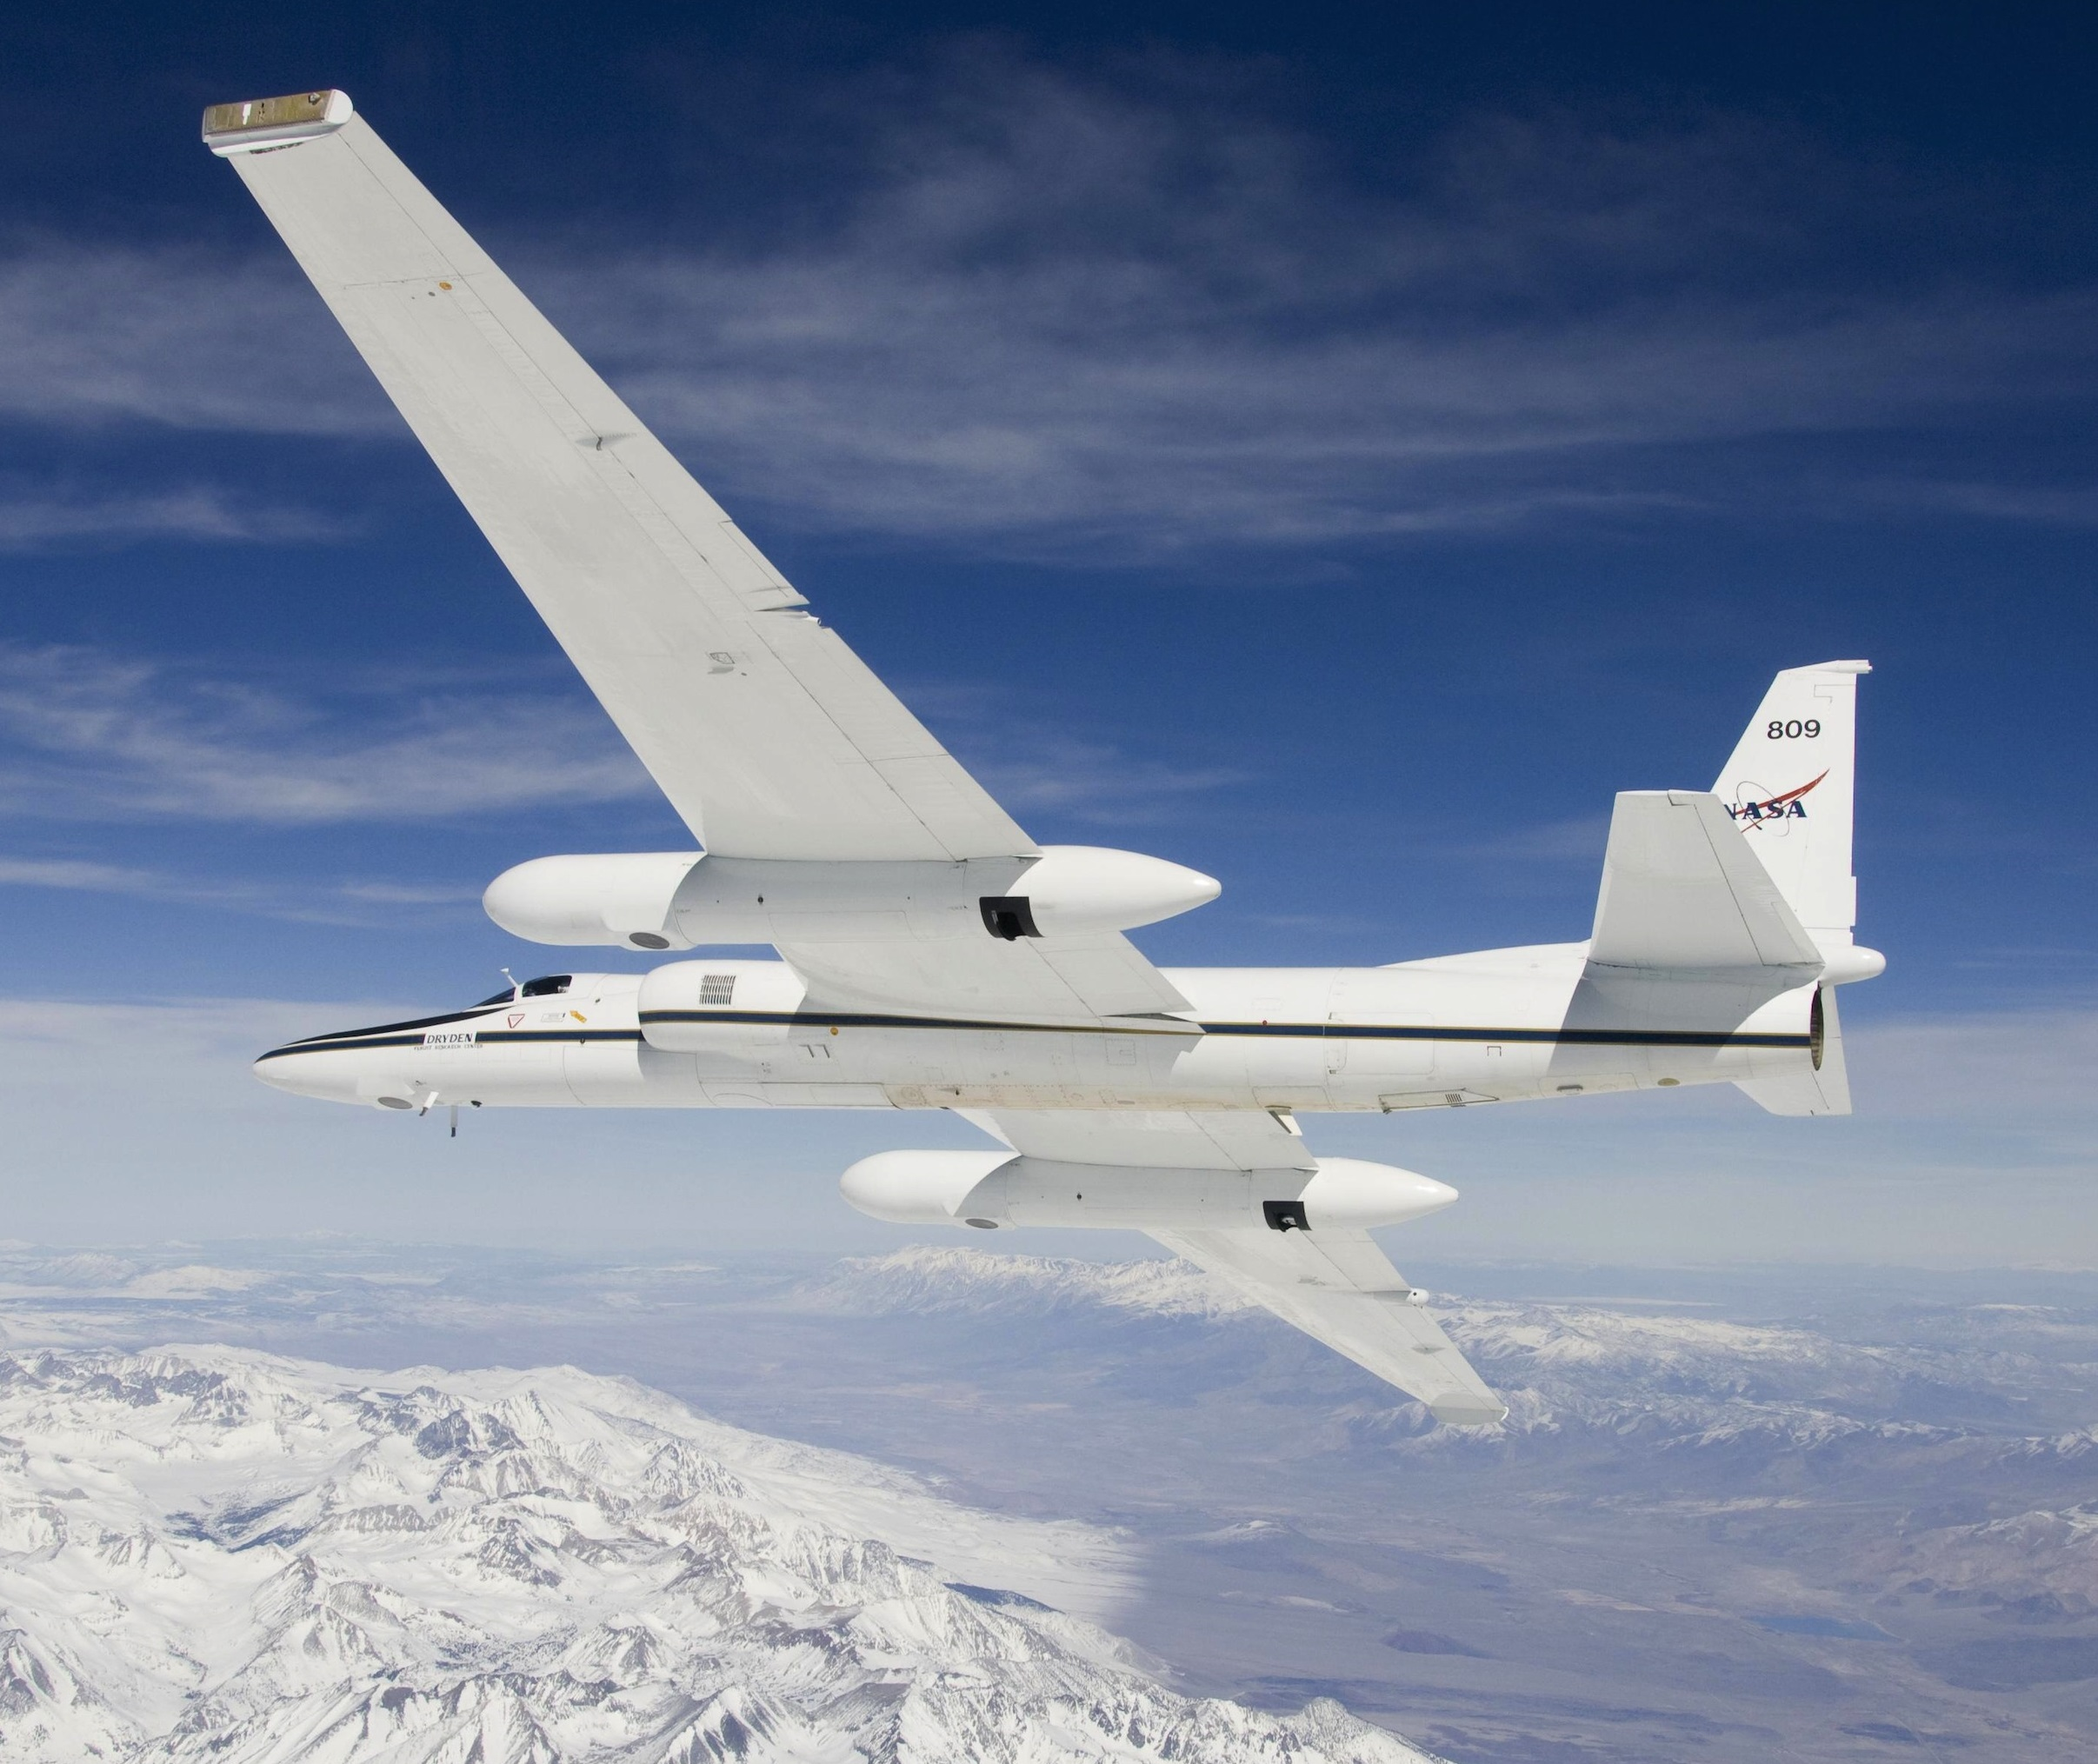 NASA's high-altitude ER-2 research aircraft will be used in two new projects to study the impact of strong summer storms on the stratosphere and intense snowfall events along the U.S. East Coast.